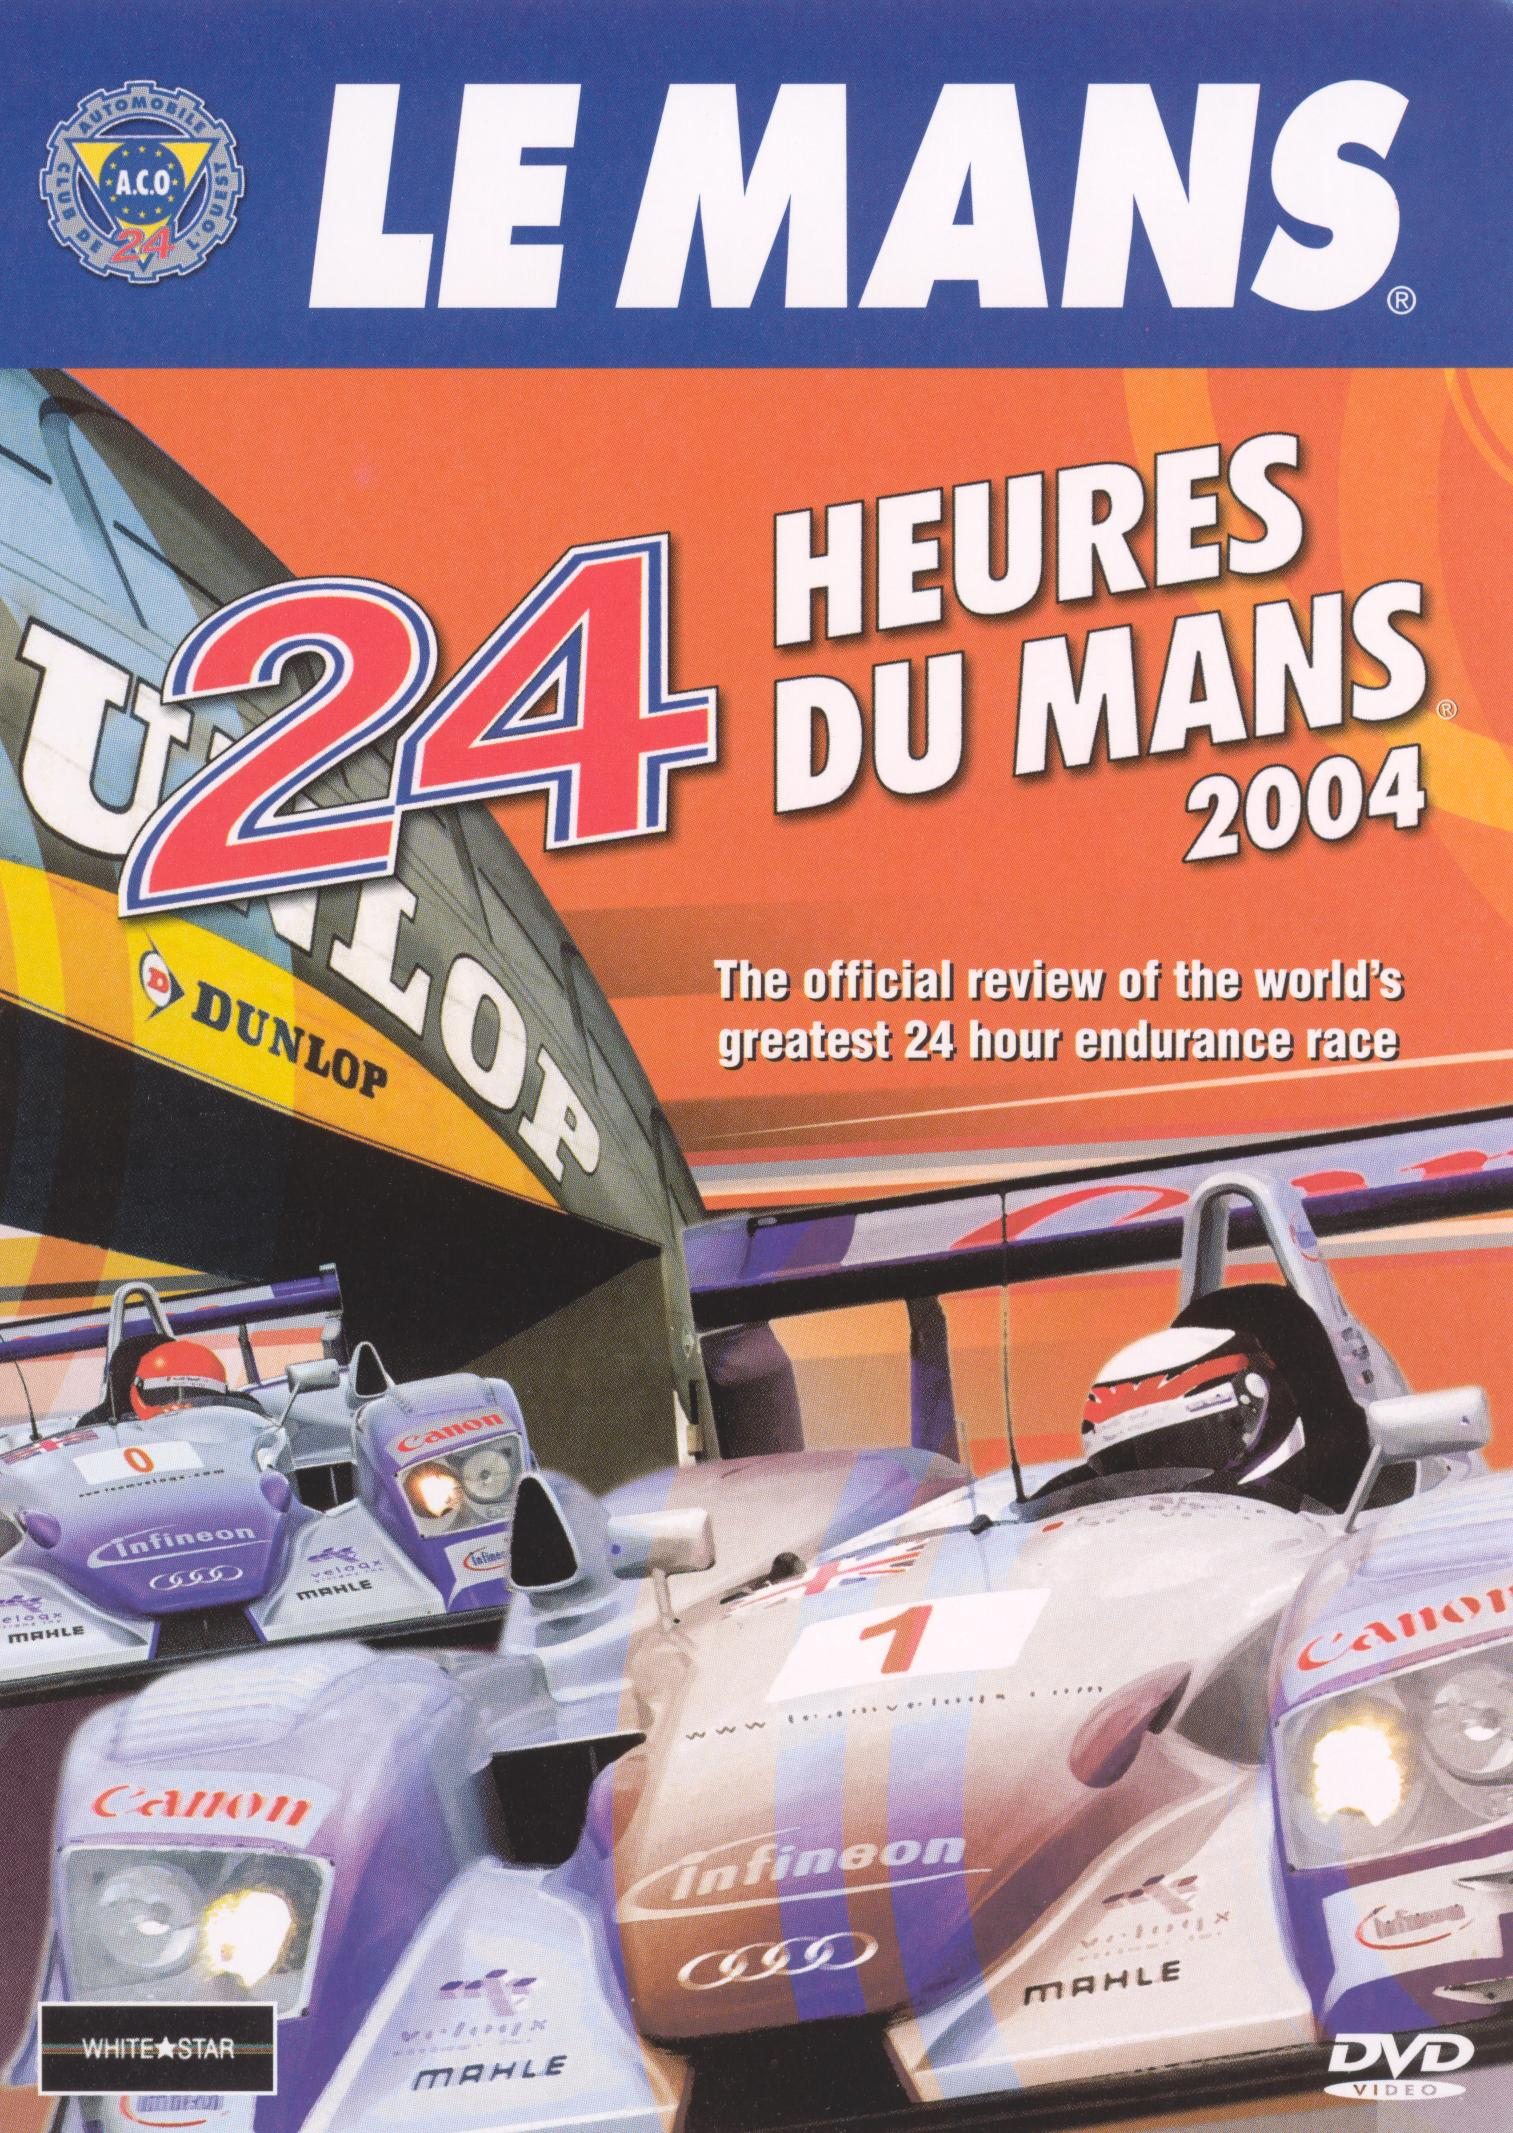 24 Heures du Mans: Le Mans 2004 Official Review